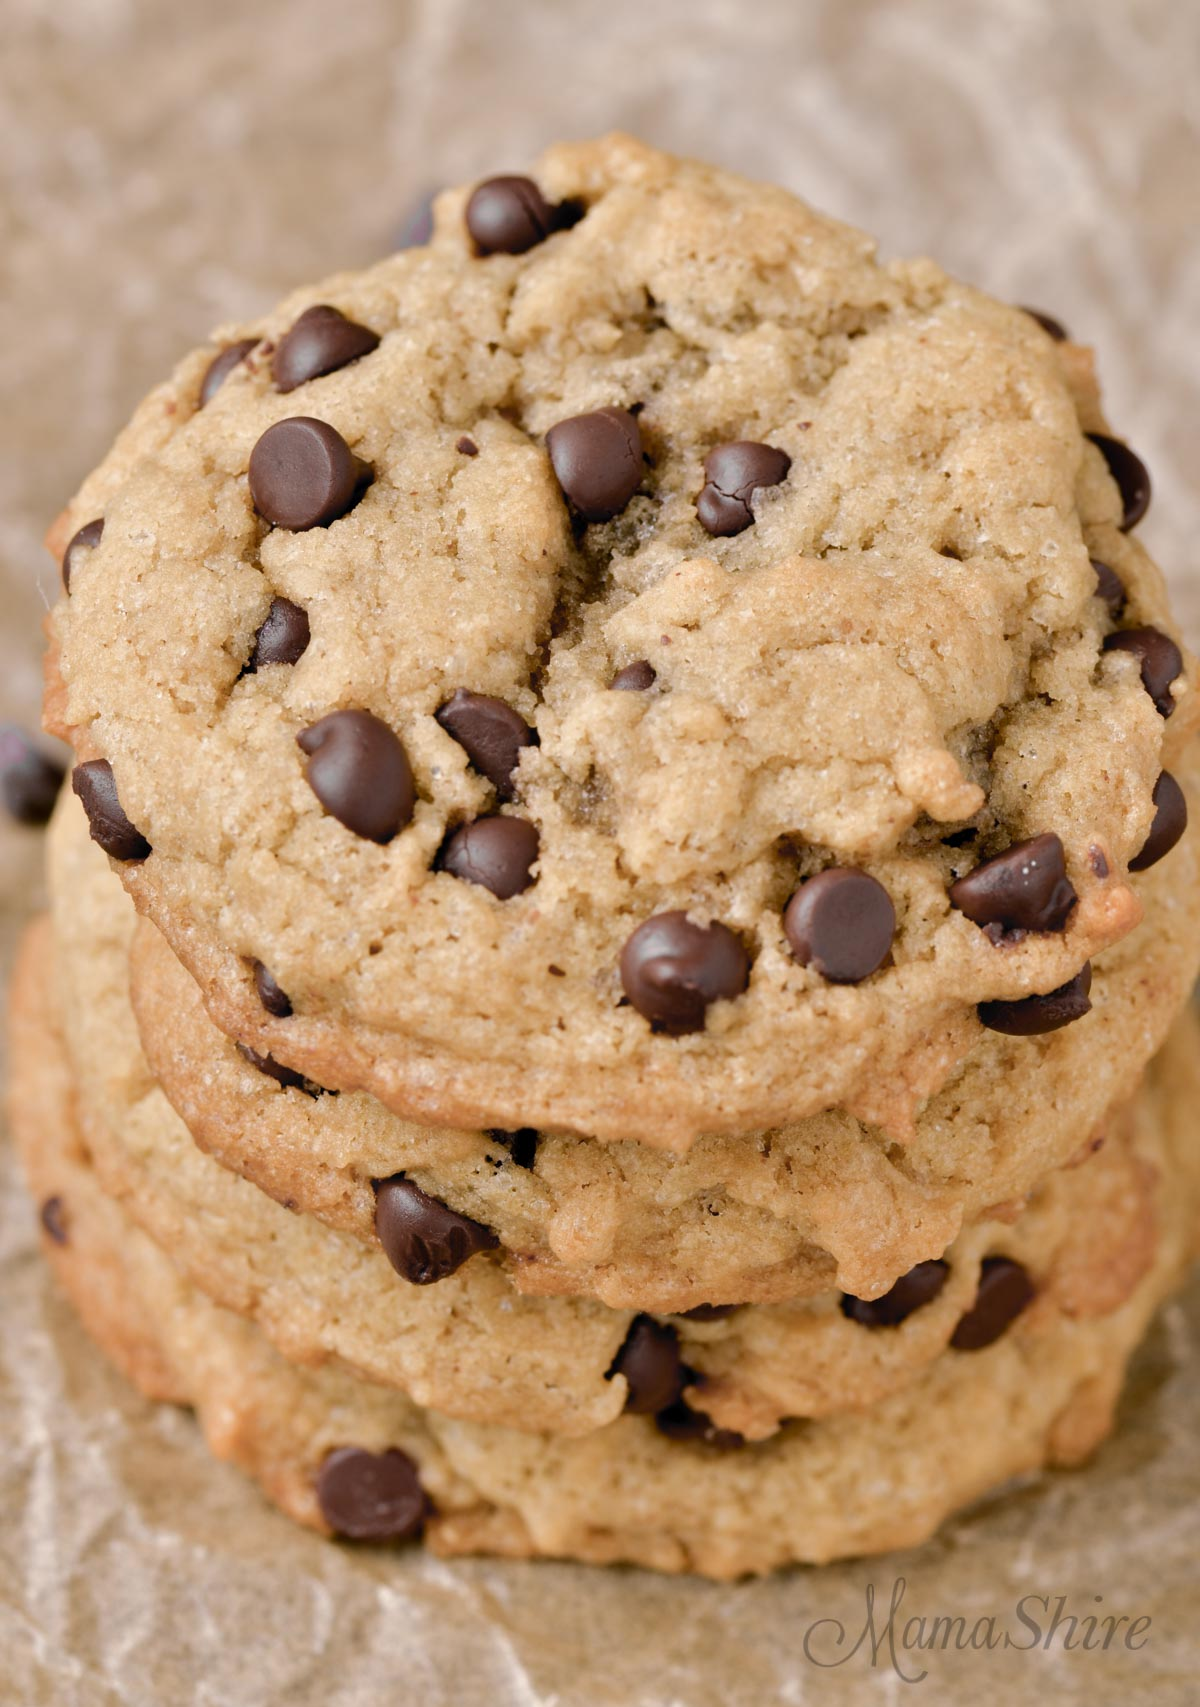 Peanut butter chocolate chip cookies made from a gluten-free recipe.